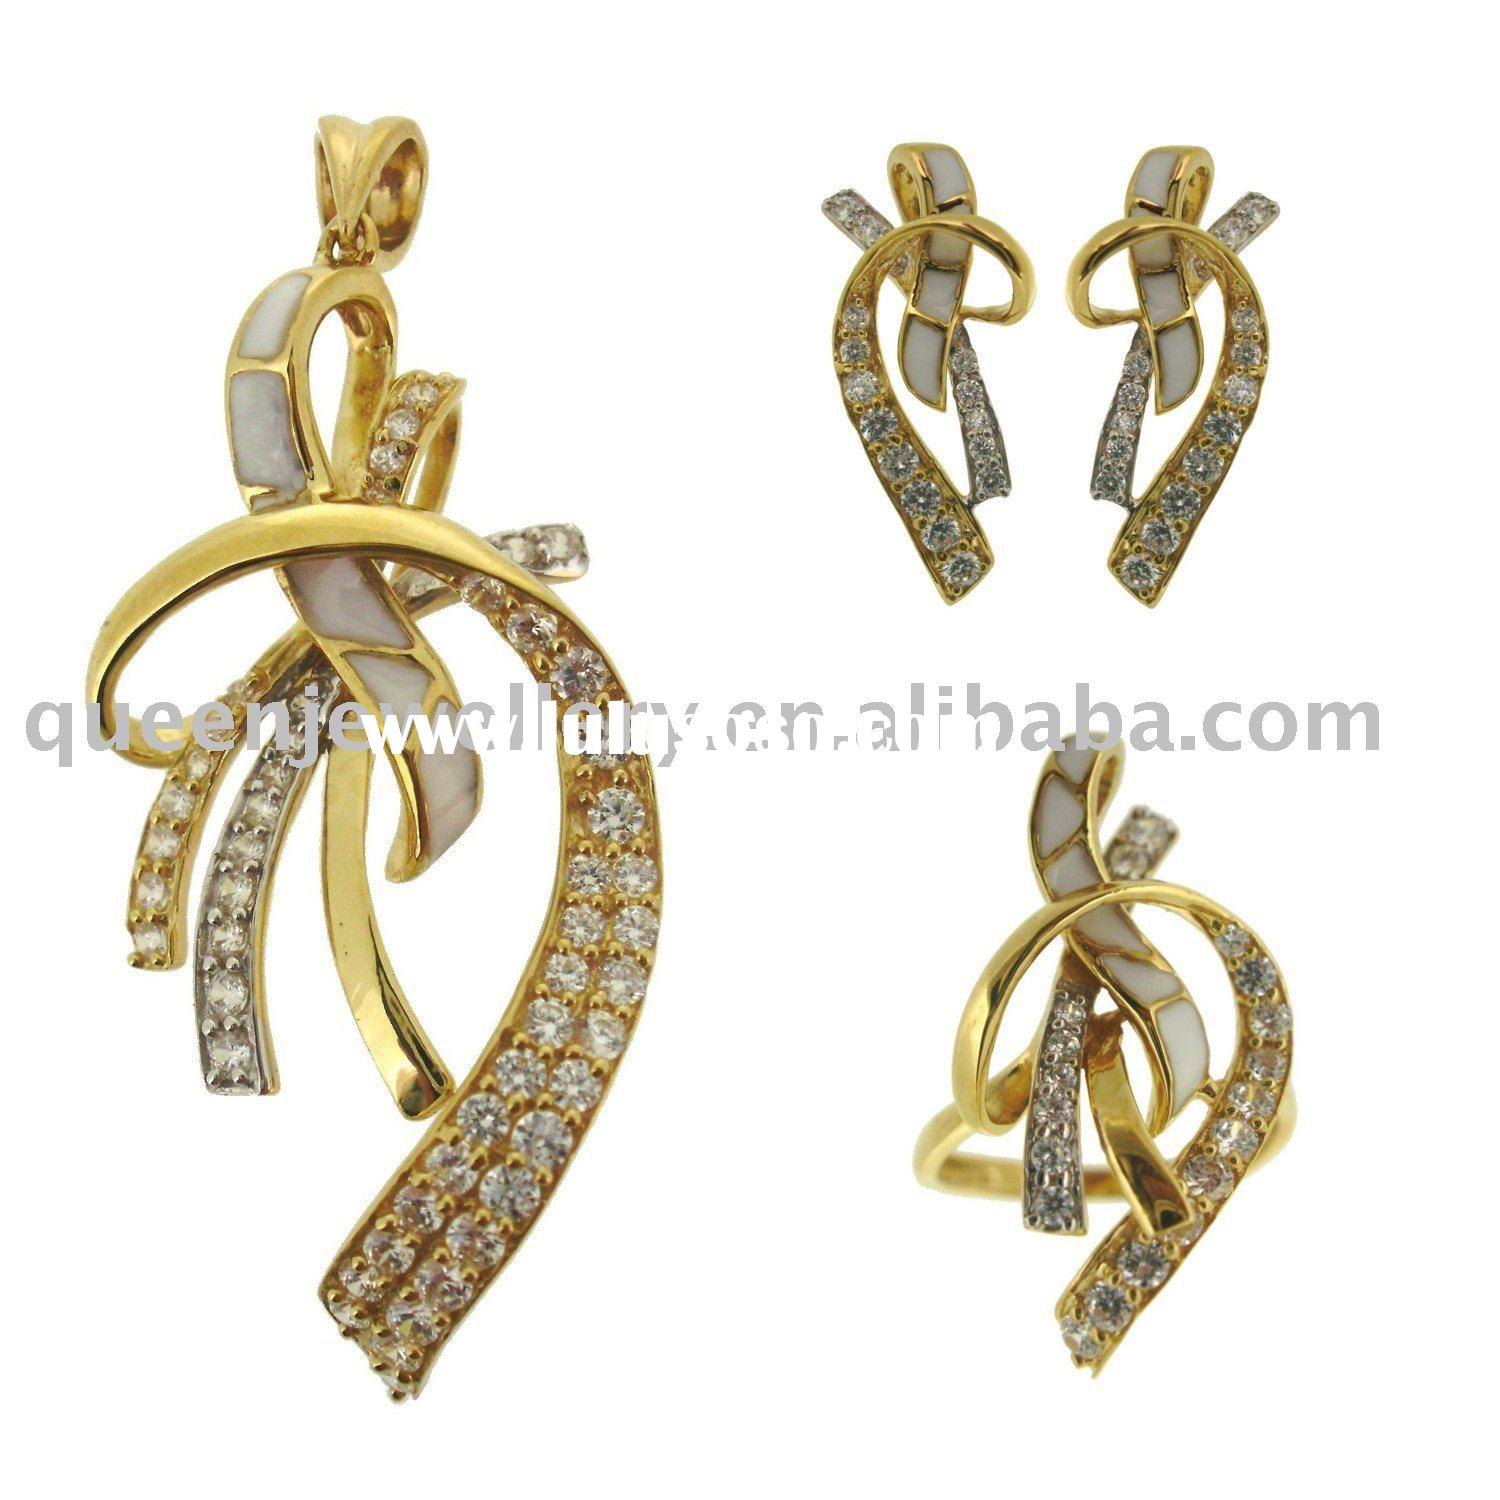 18k gold jewelry with enamel and stones setQMH034